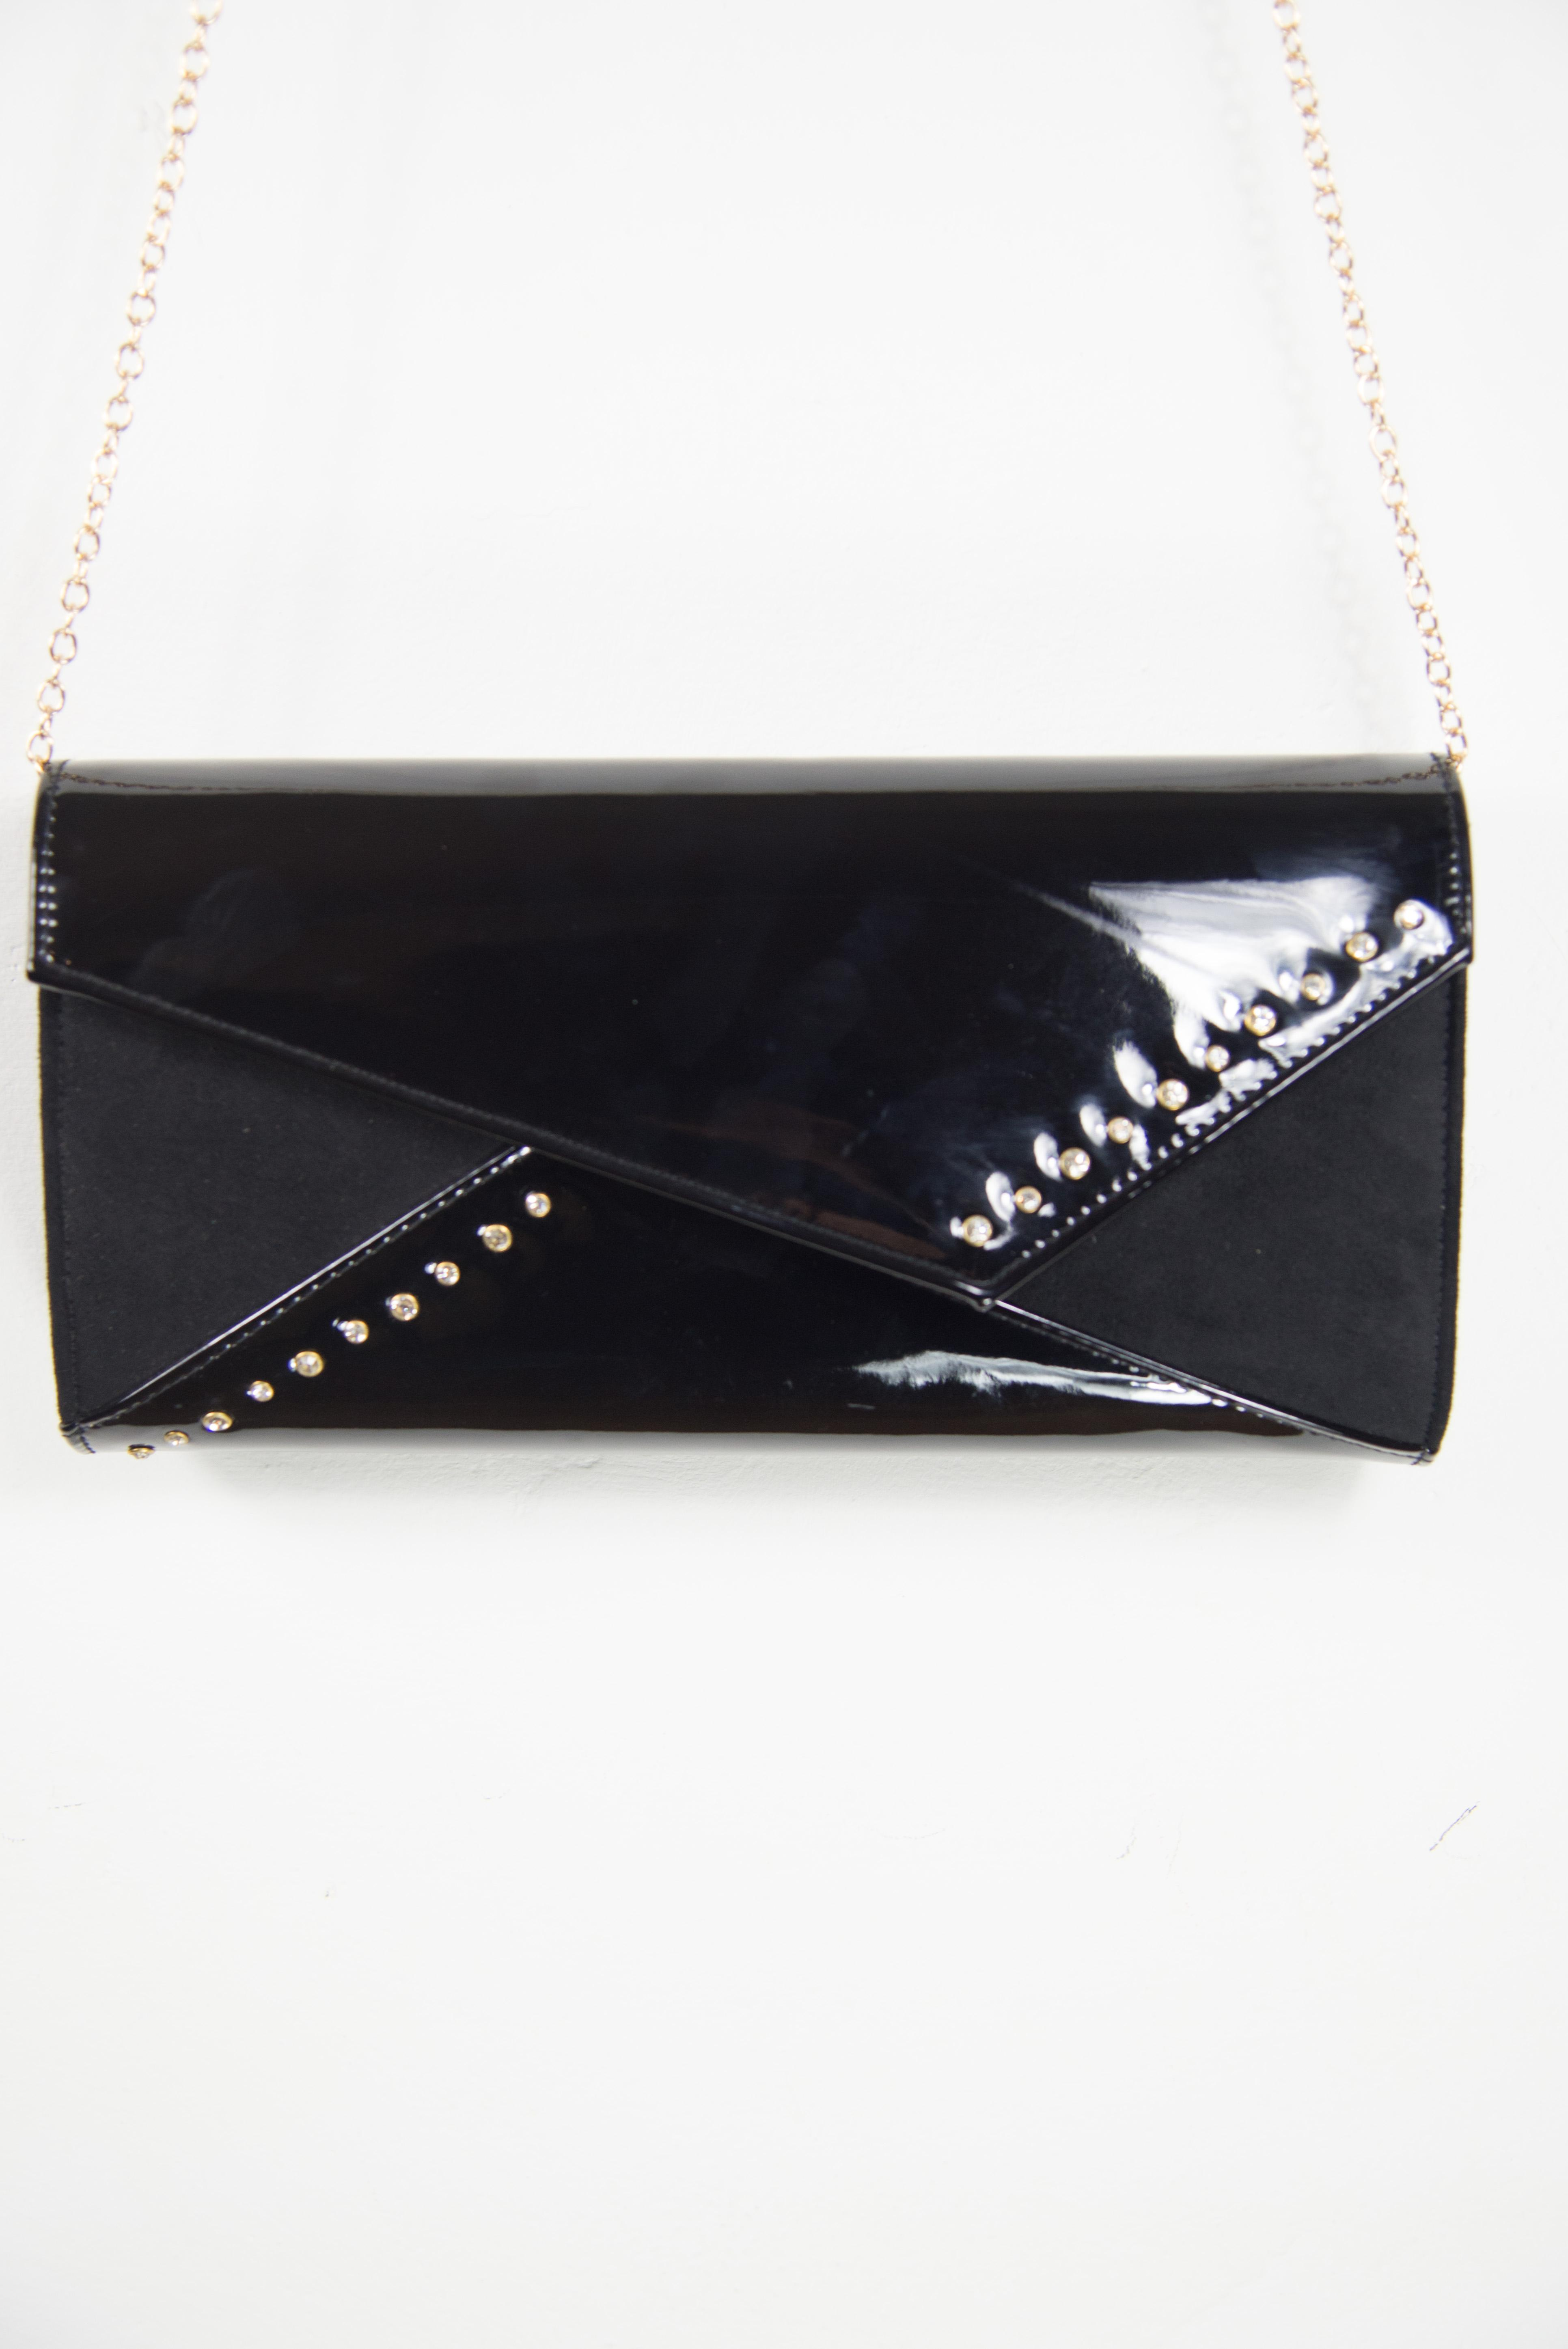 Large, comfortable black clutch | Online glossy leather clutch bag